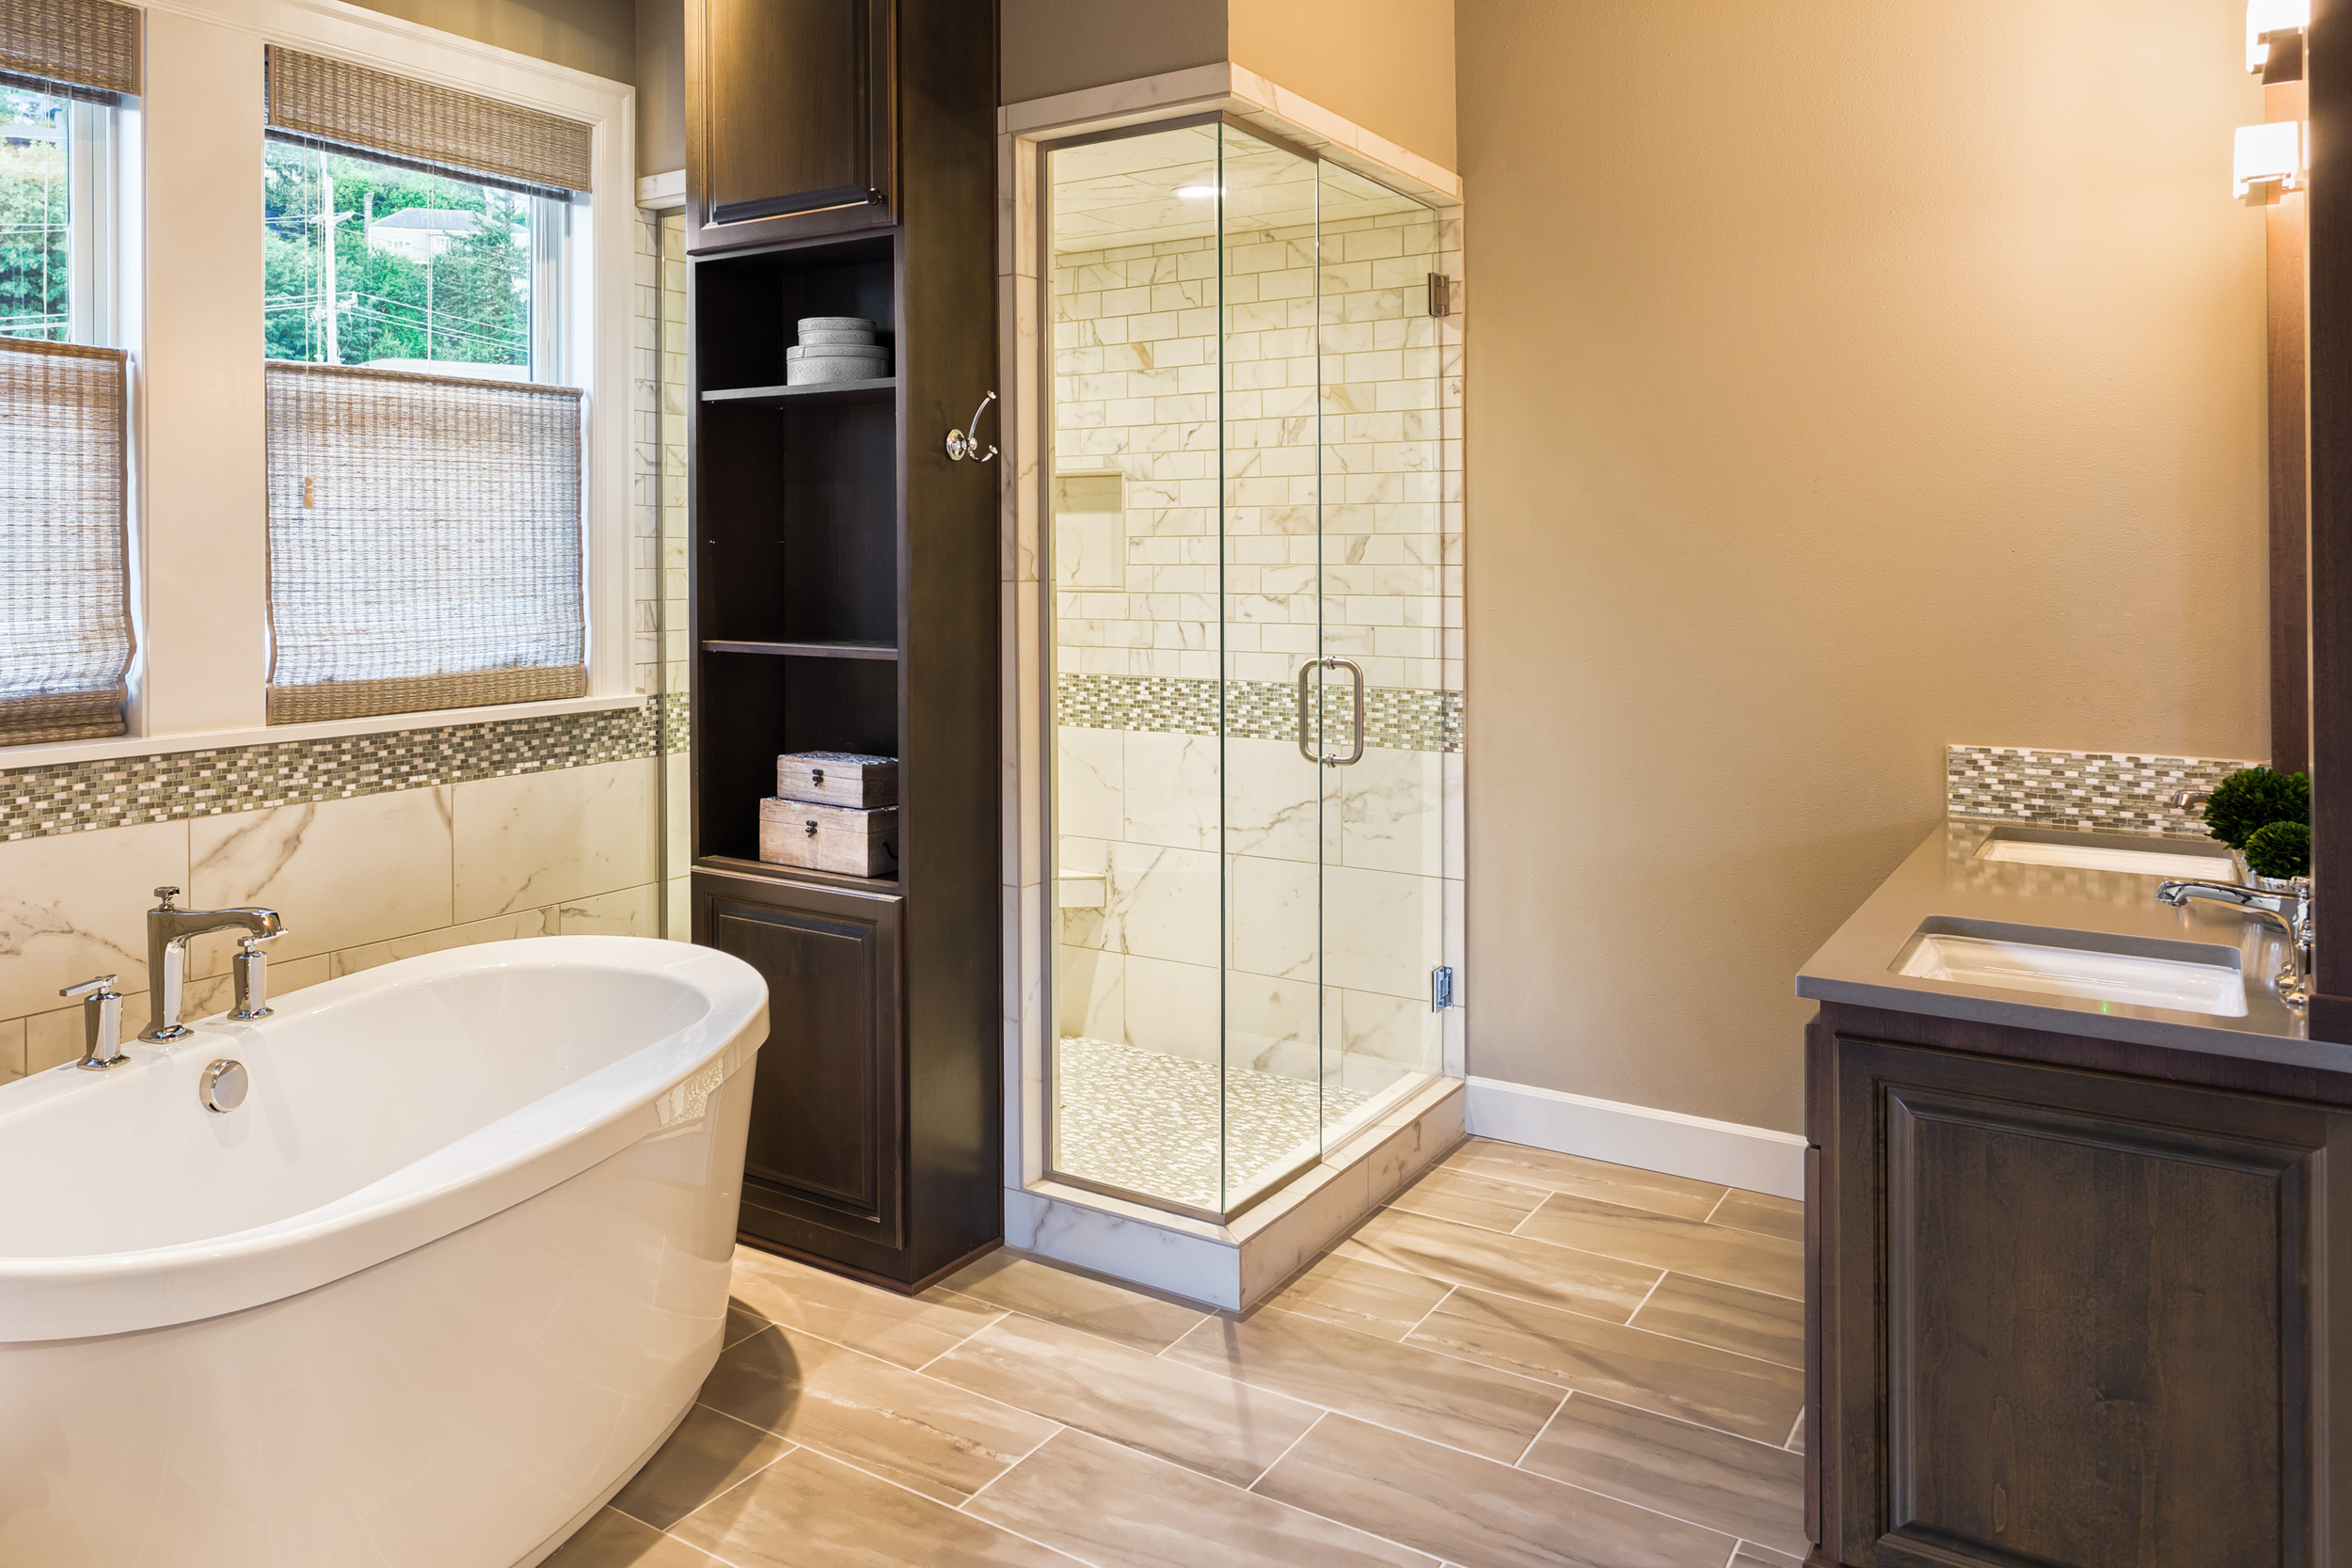 Medium bathroom with tan tile and paint, bath, walk-in shower, built-in linen storage, and double sinks